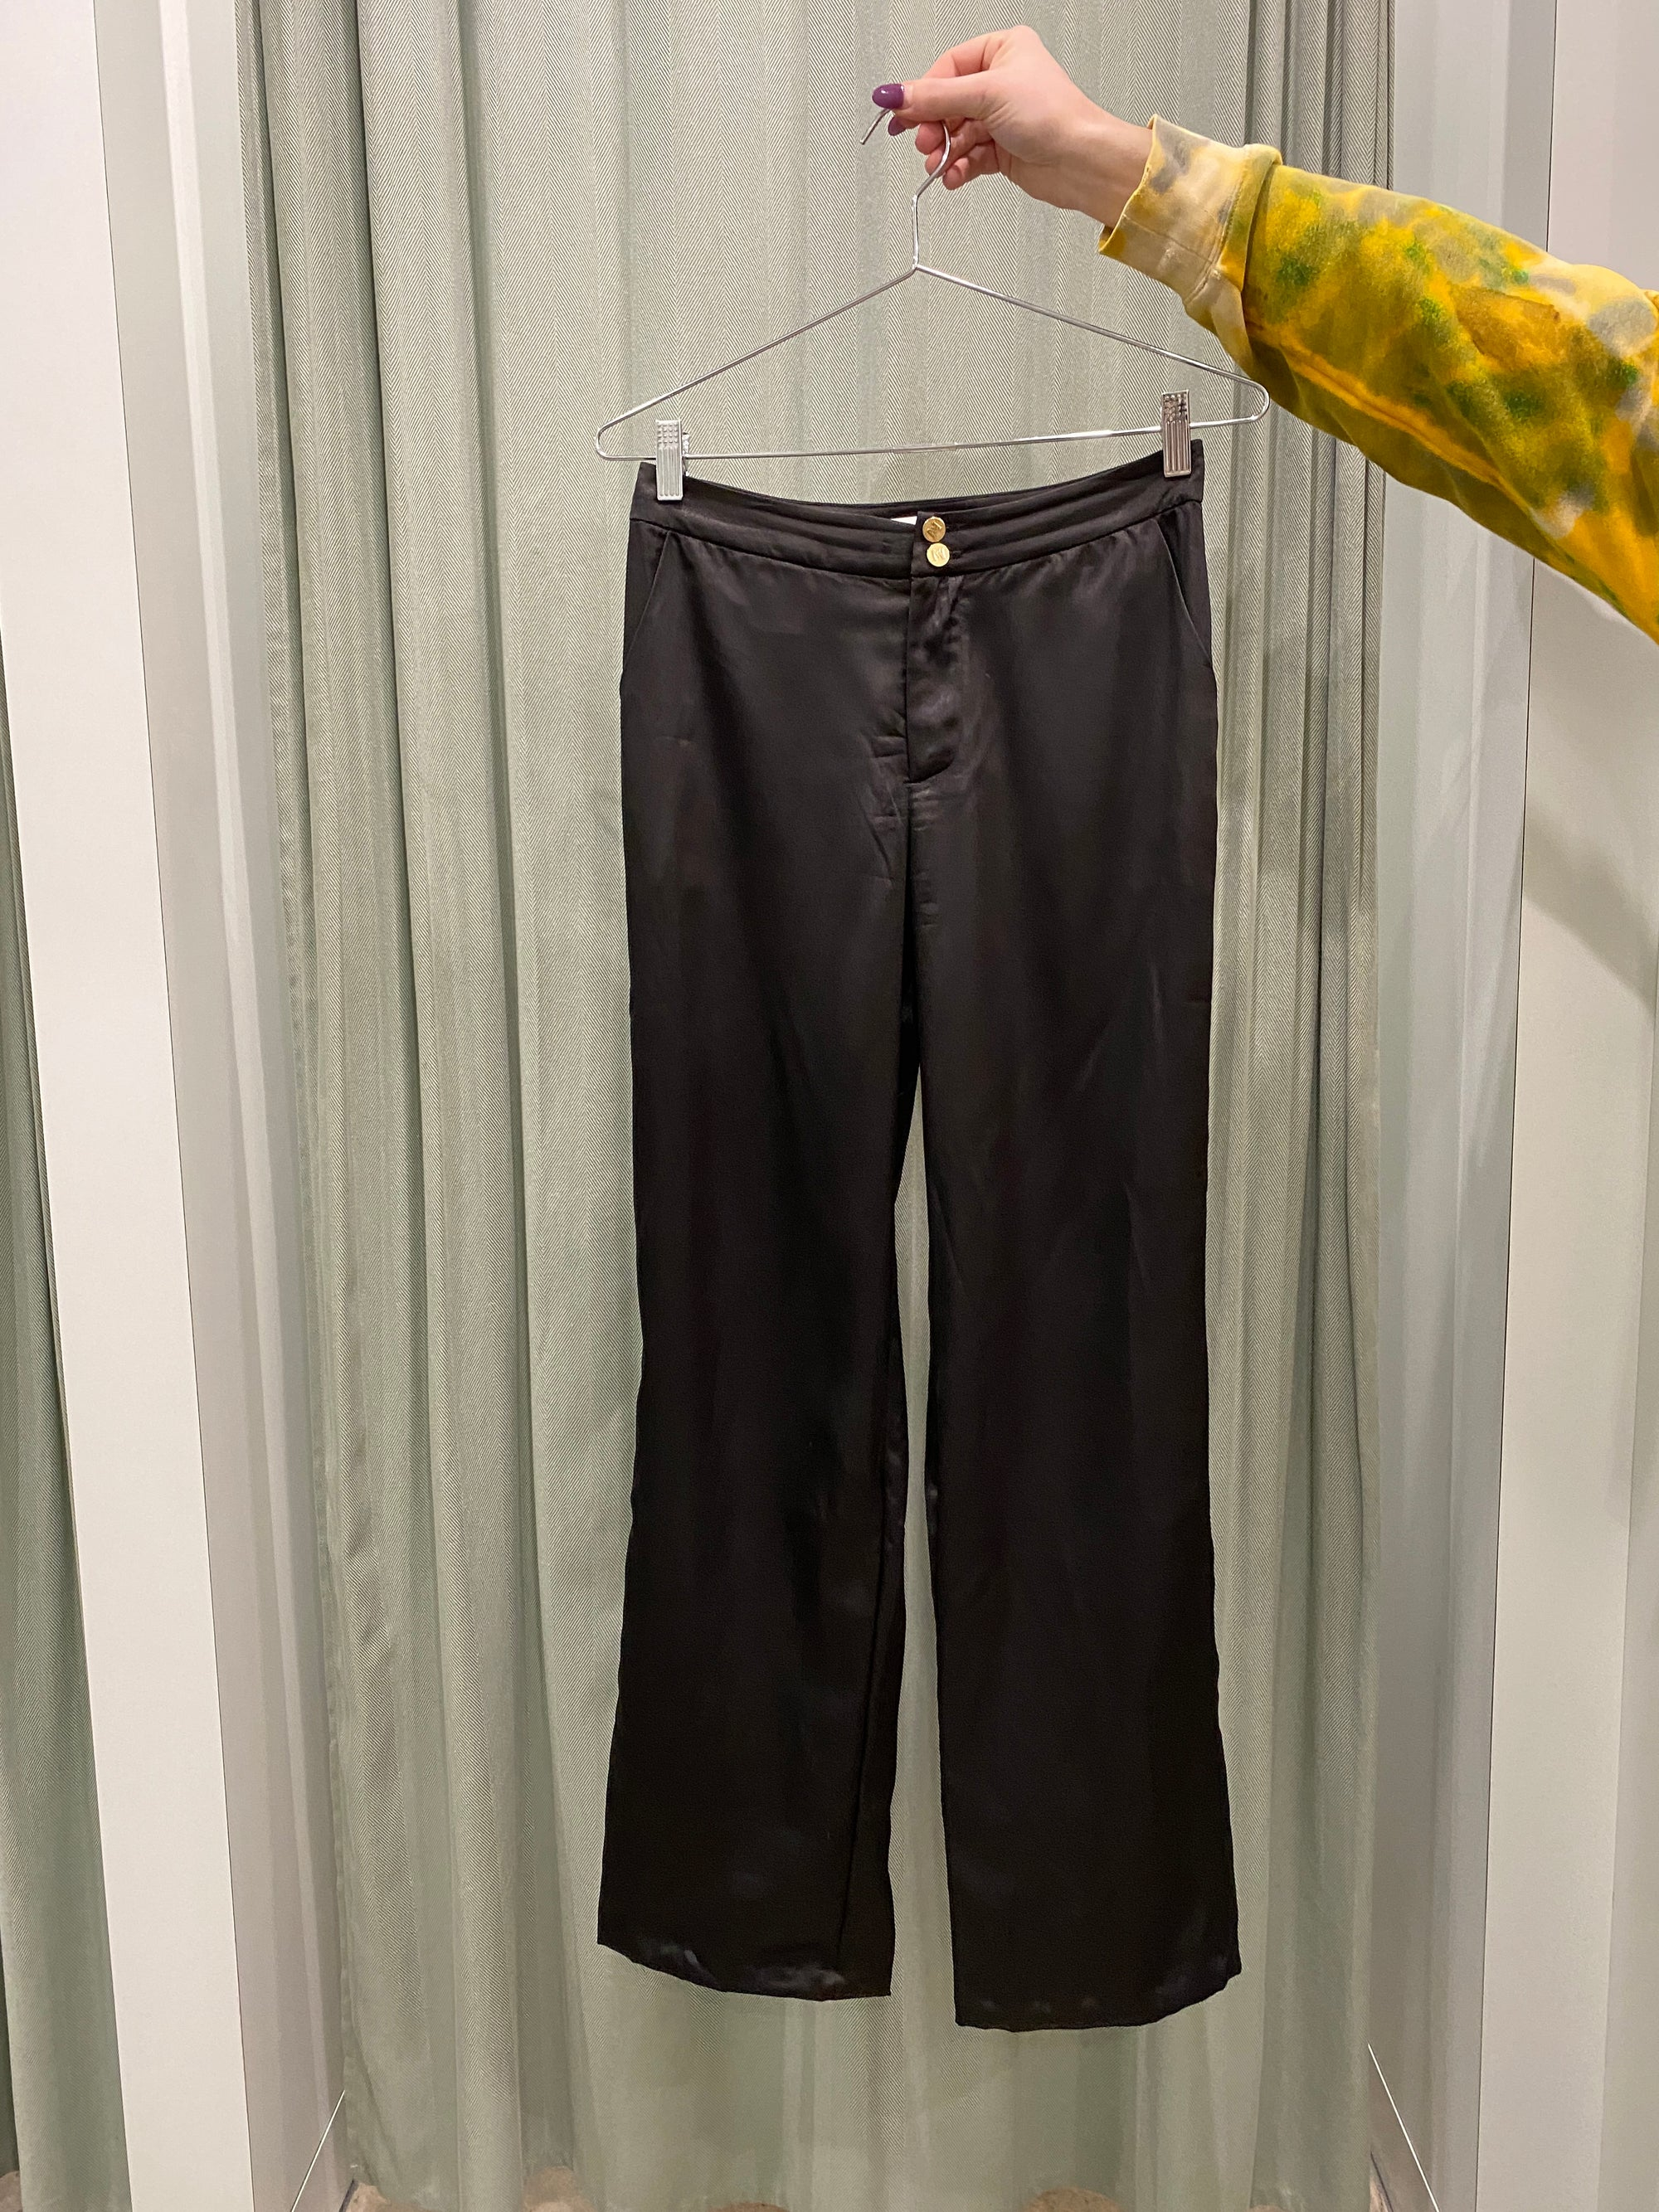 Shiny Black Satin Pant